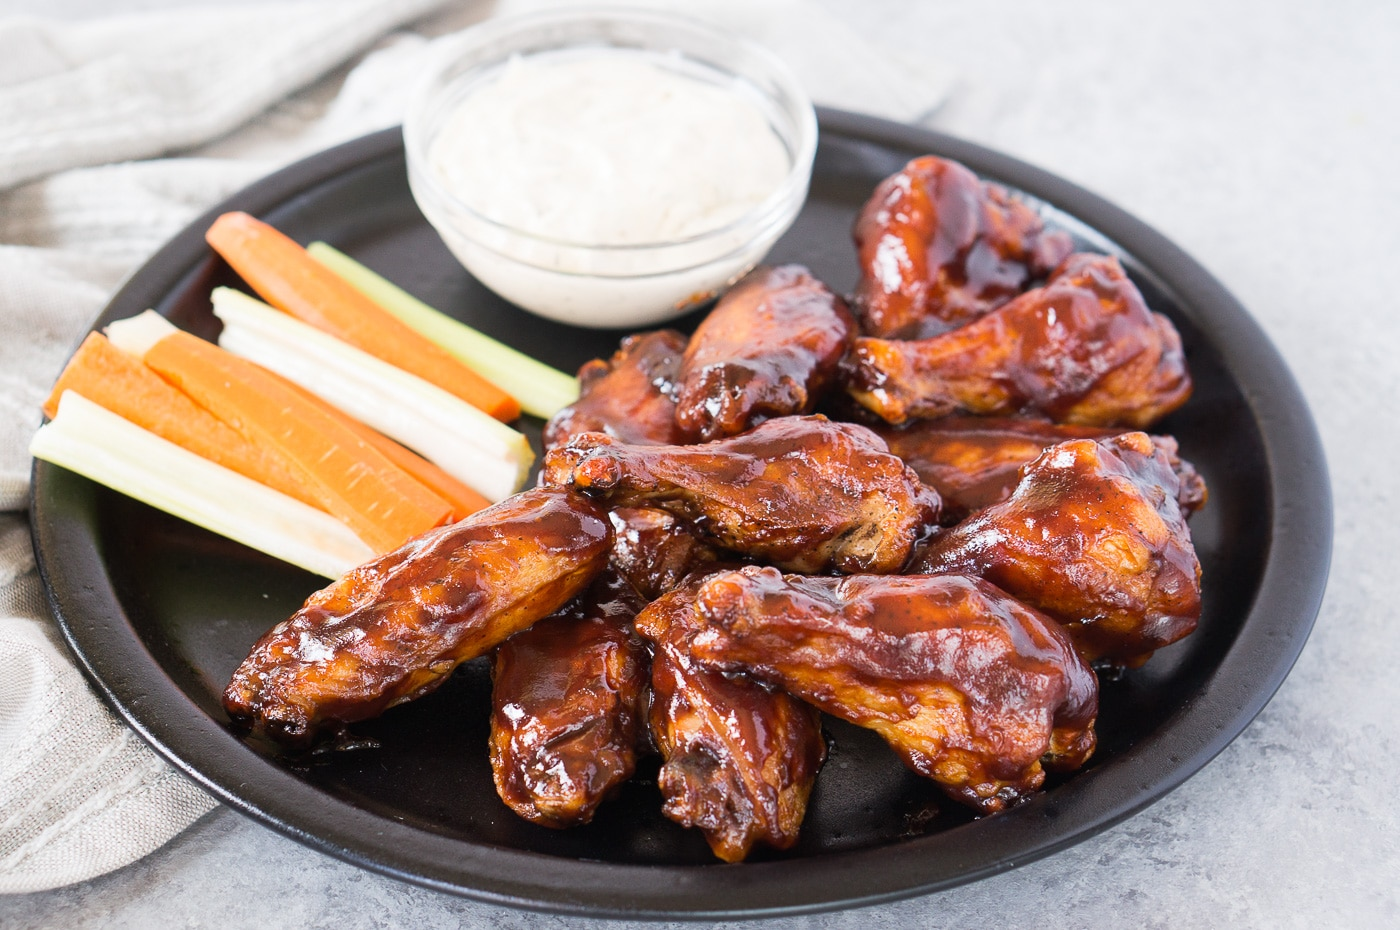 baked chicken wings with barbecue sauce